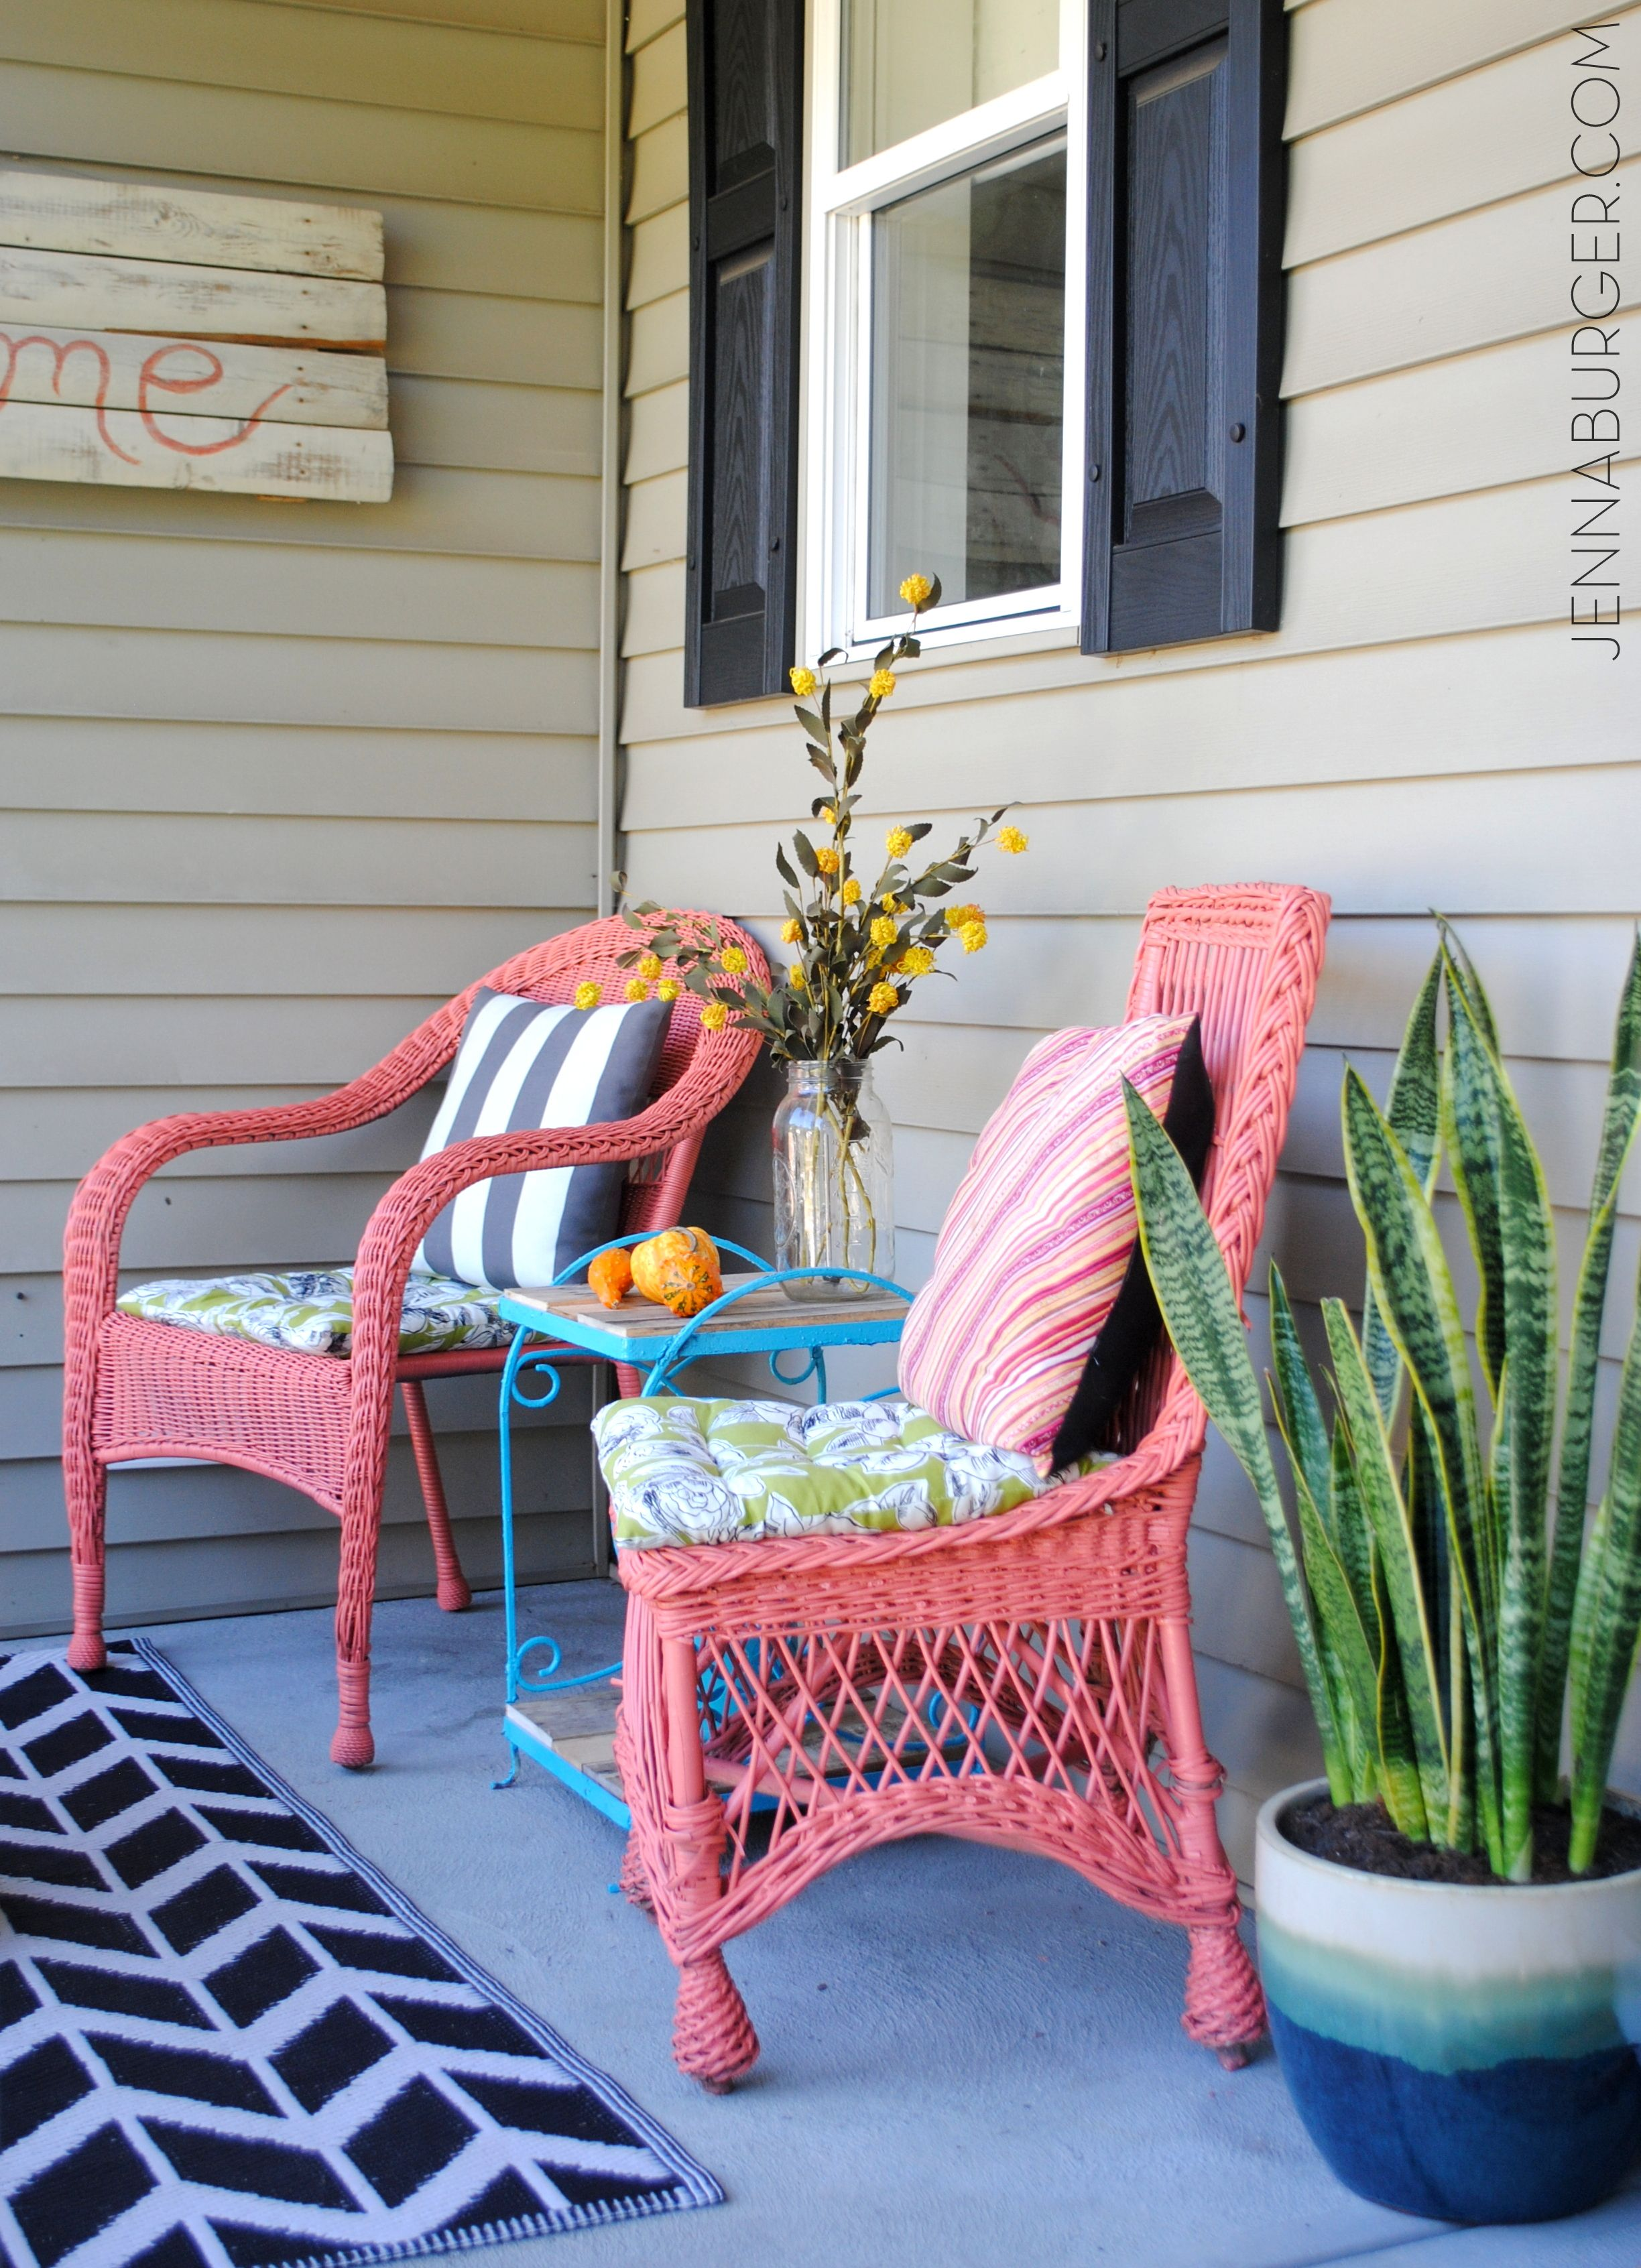 Diy Tutorial For Painting Wicker Using The Homeright Finish Max